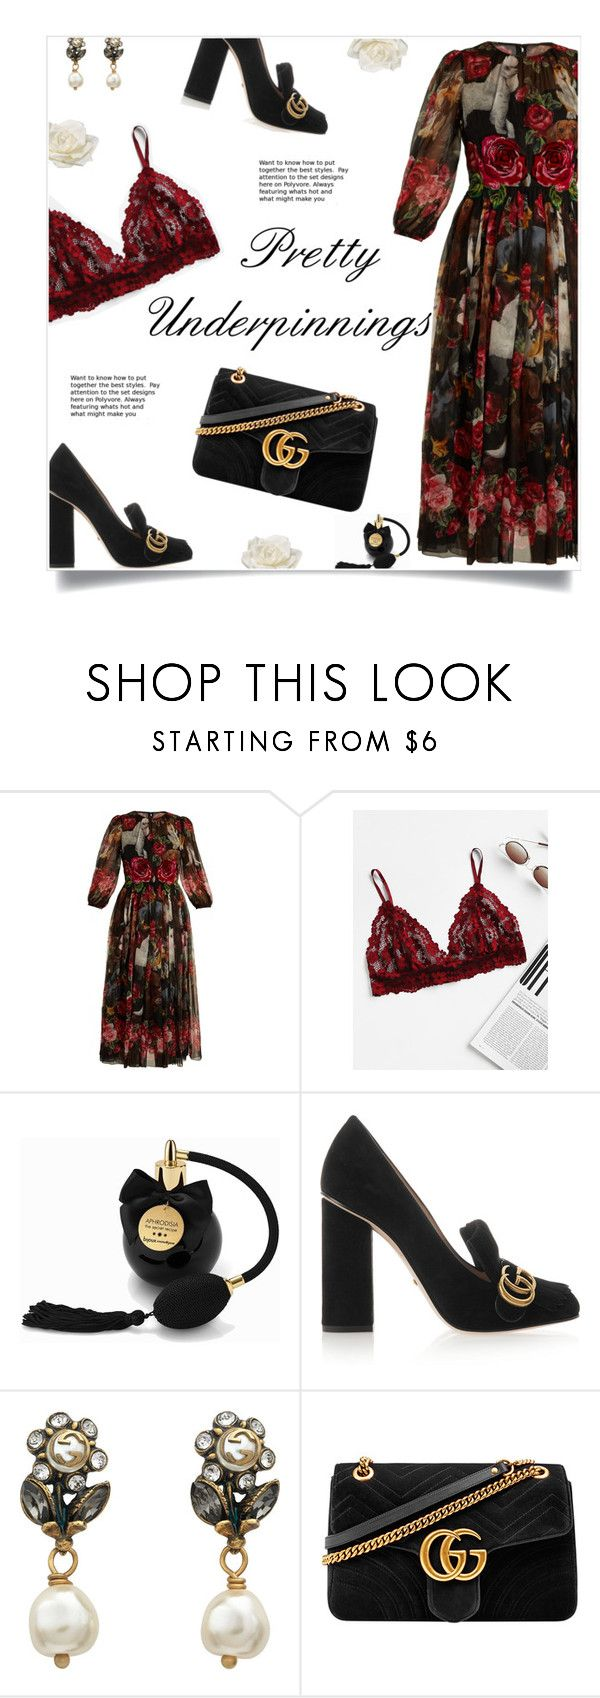 """""""Gucci Glam"""" by yummymummystyle ❤ liked on Polyvore featuring Dolce&Gabbana, Bijoux Indiscrets, Gucci, Allstate Floral, floral, gucci, blockheels, springwedding and prettyunderpinnings"""